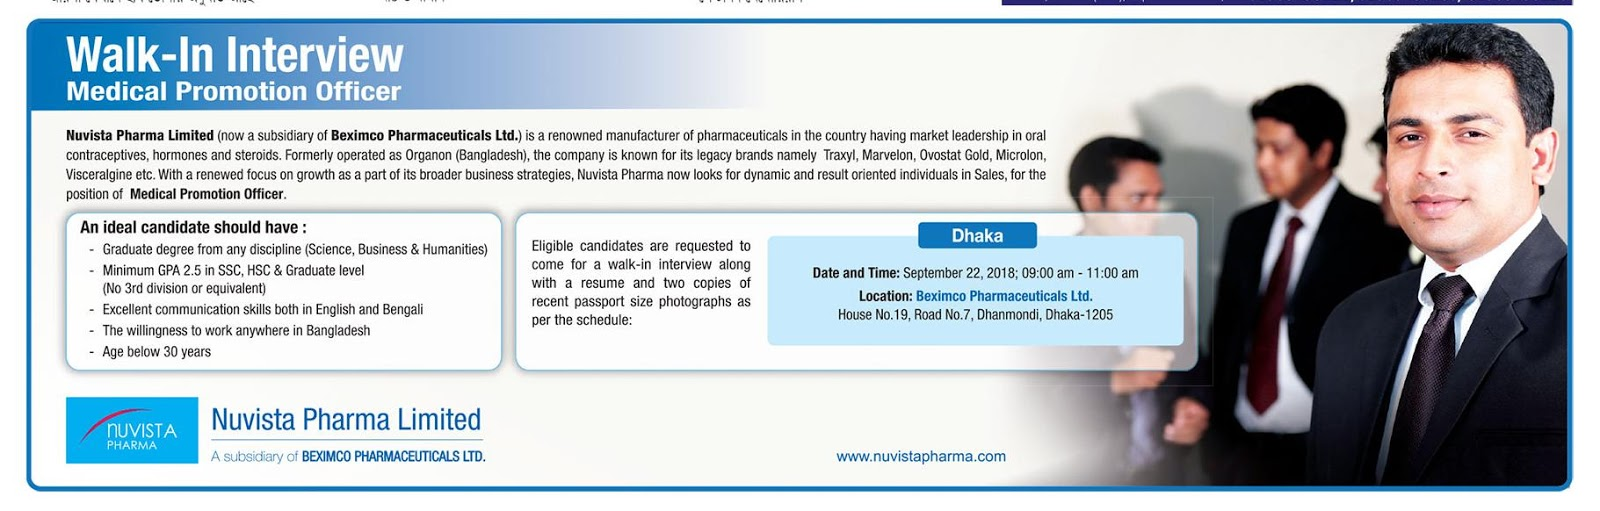 Nuvista Pharma Ltd. Medical Promotion Officer Job Circular 2018